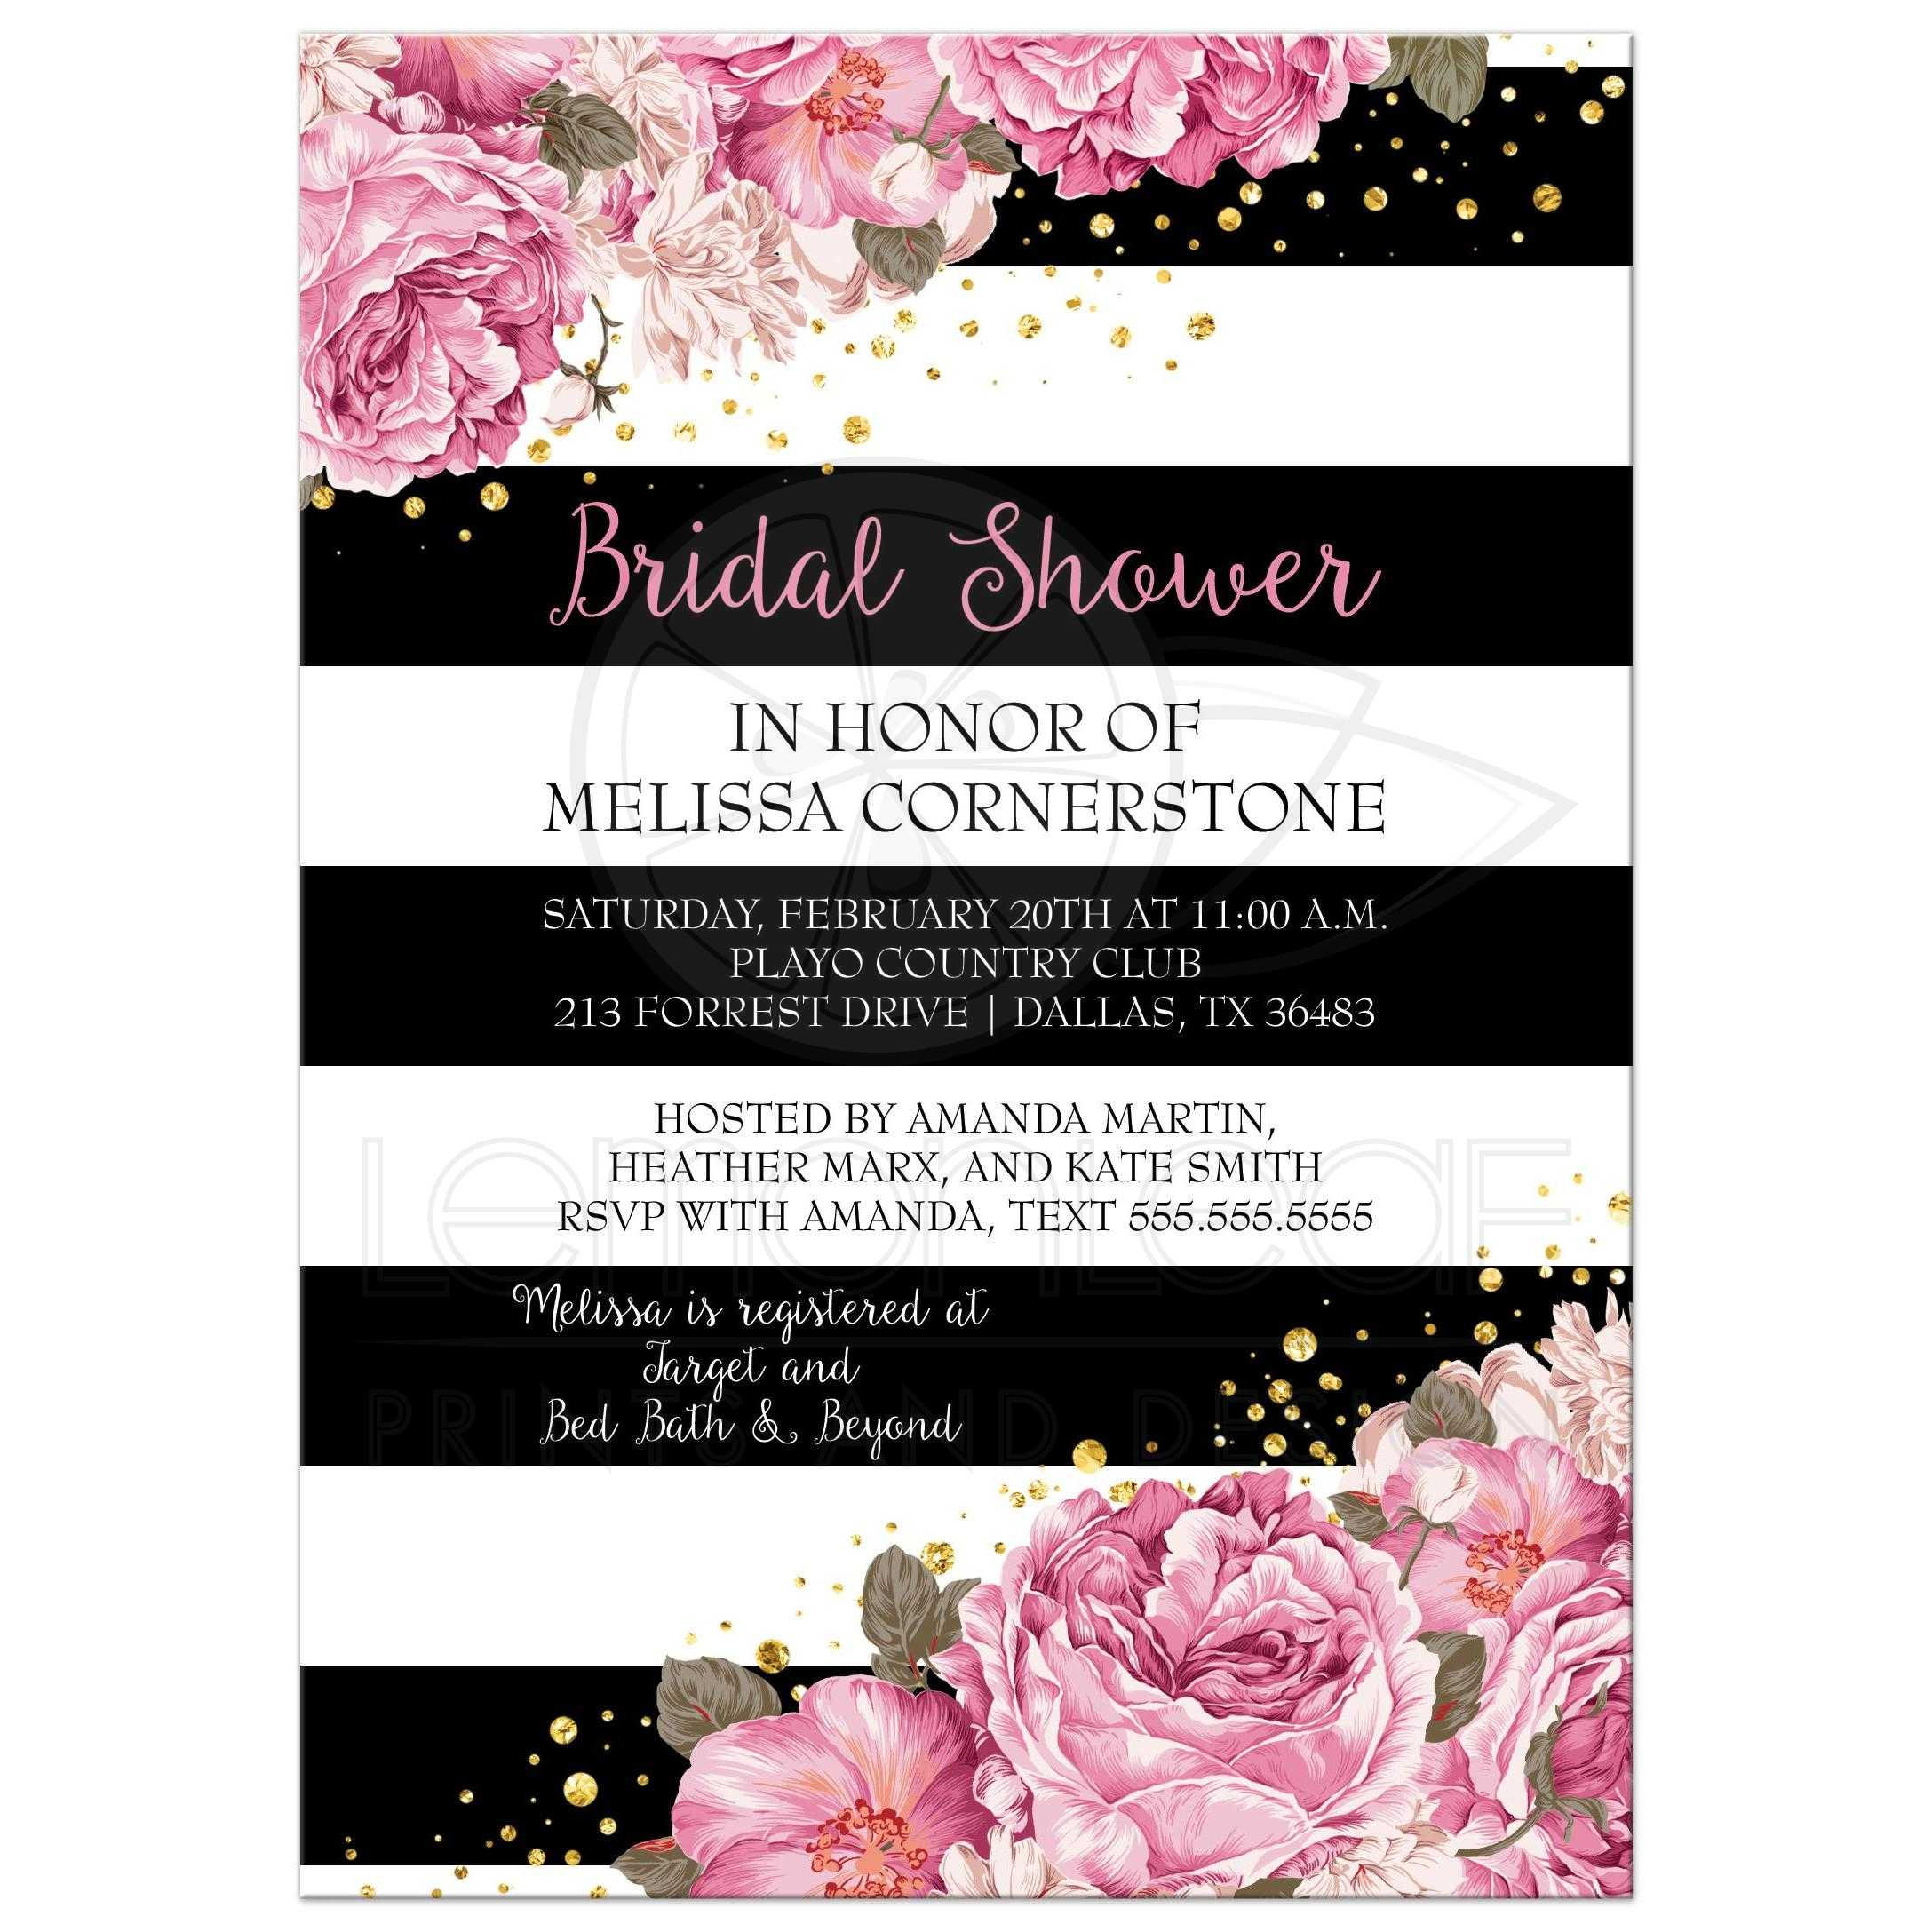 Bridal Shower Invitation Black Stripes Pink Flowers and Gold